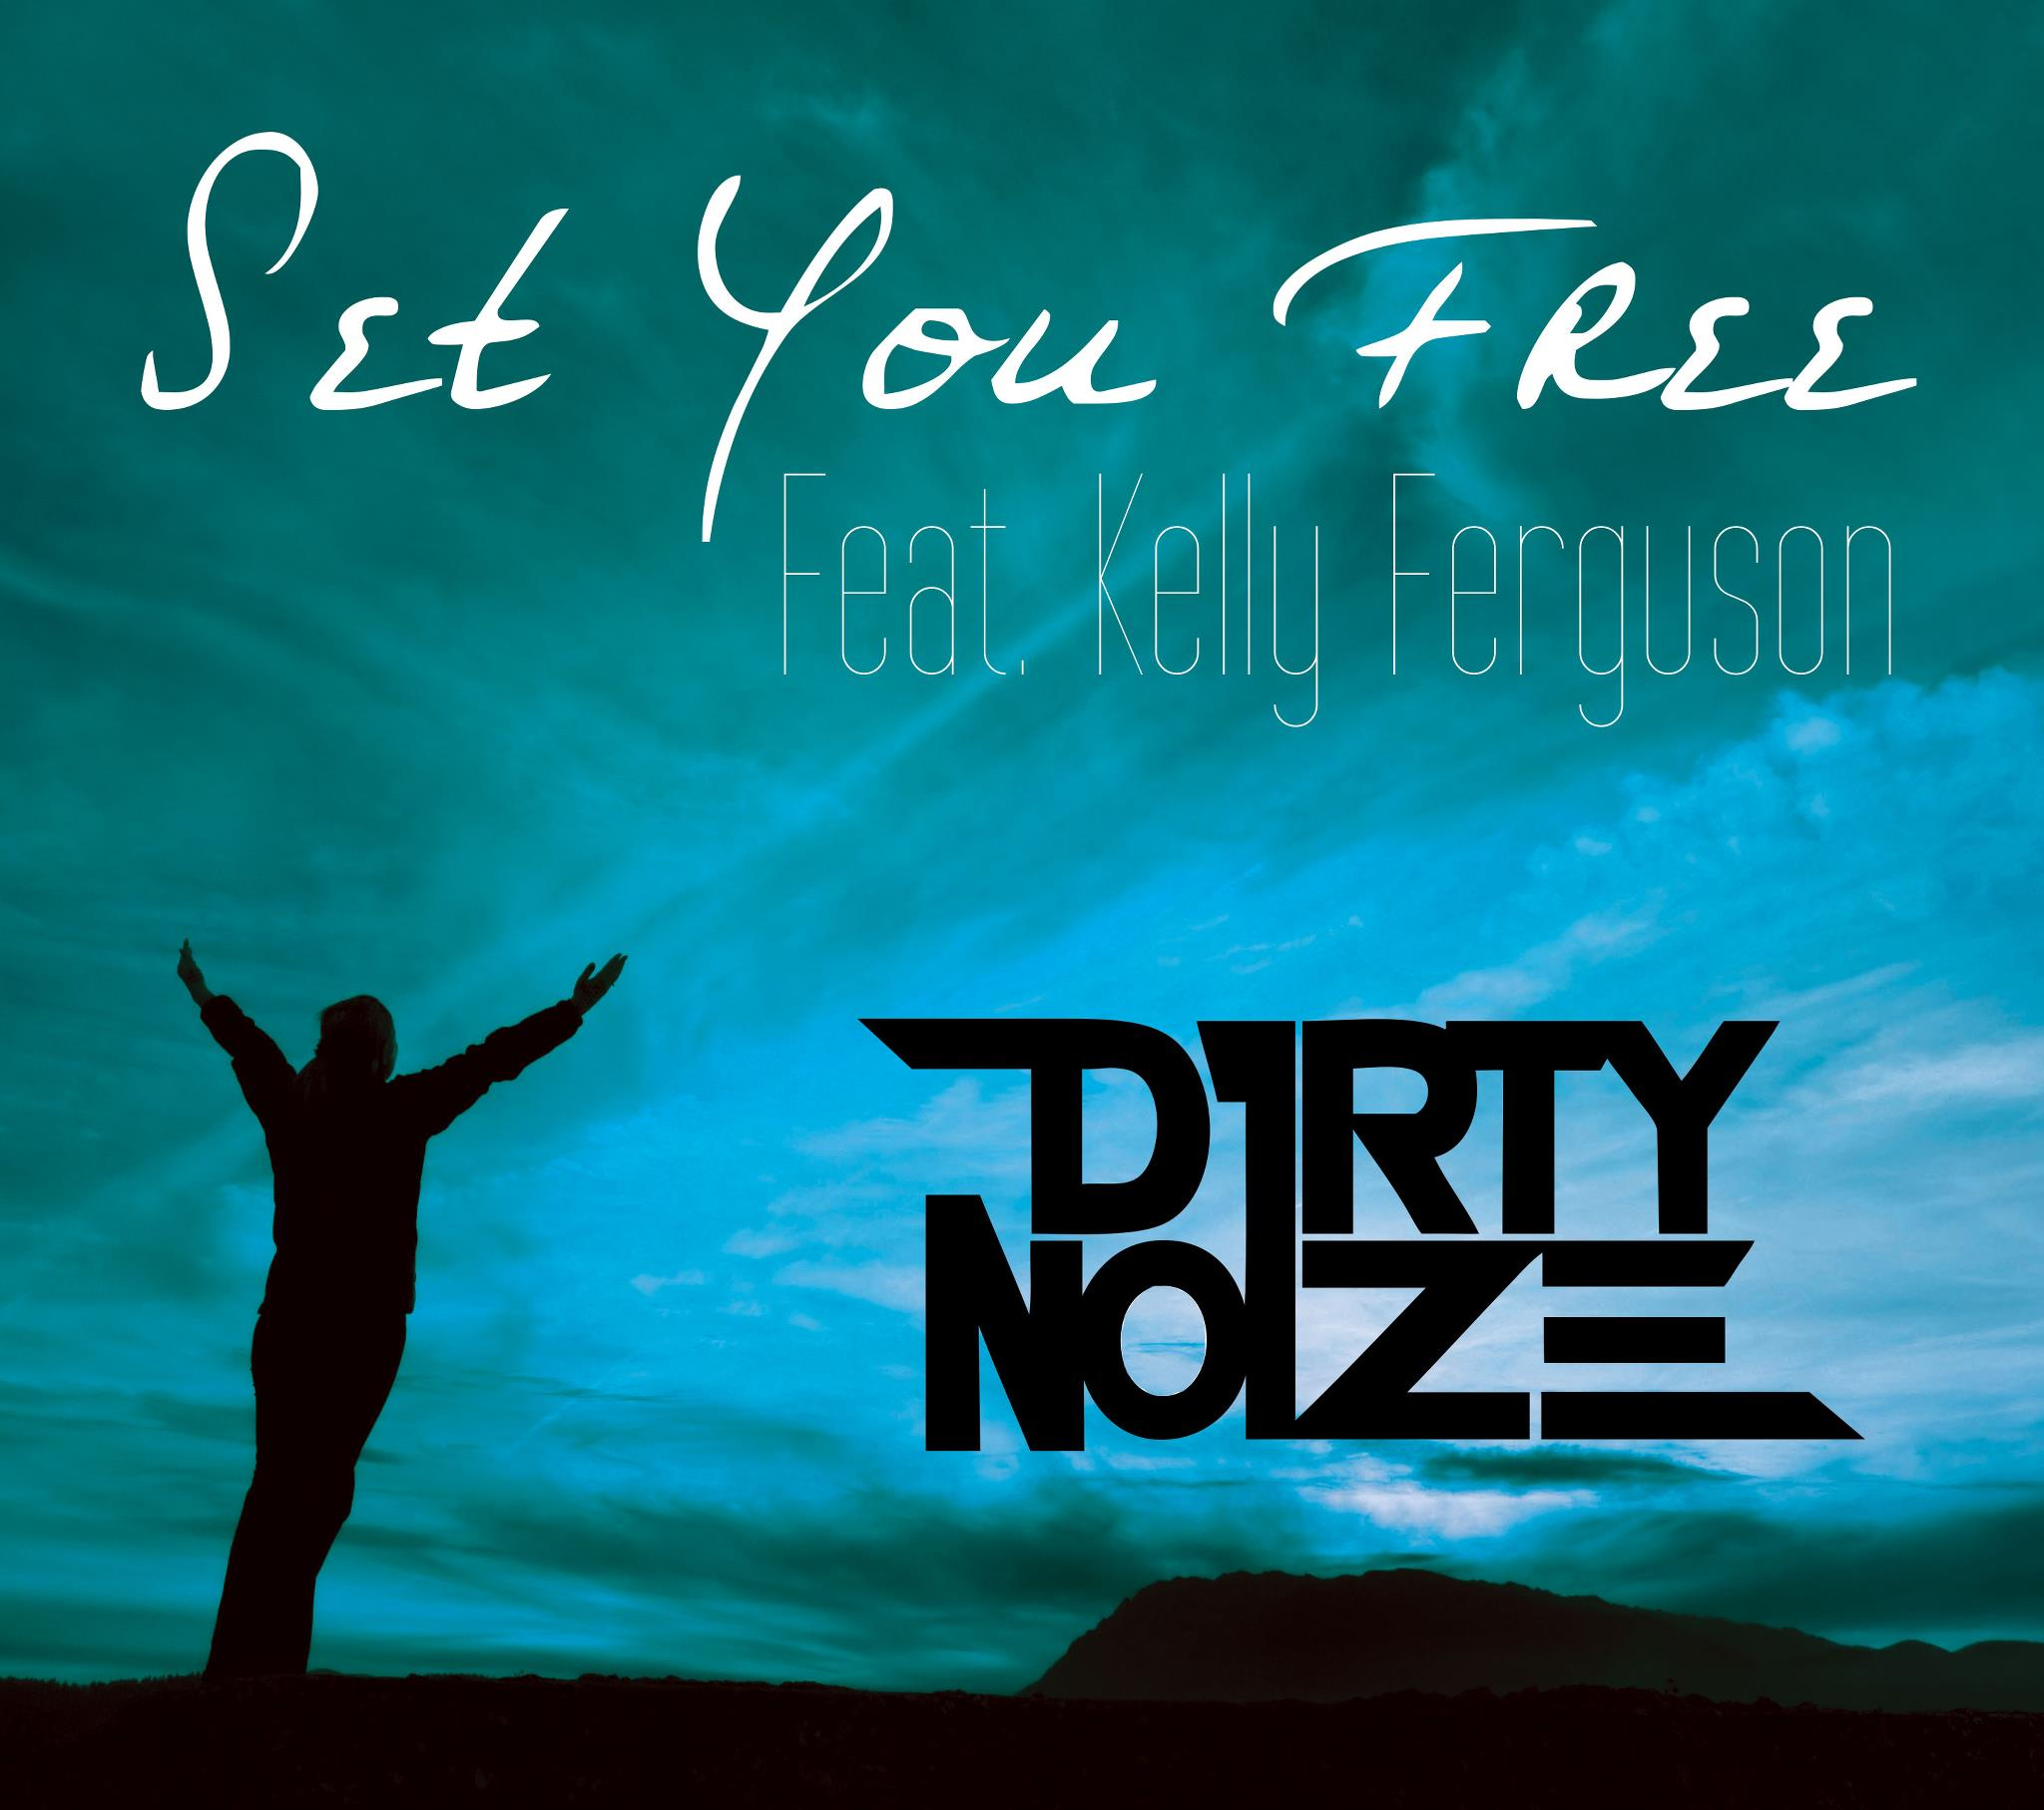 EDM | D1RTY No1ZE - Set You Free Feat. Kelly Ferguson